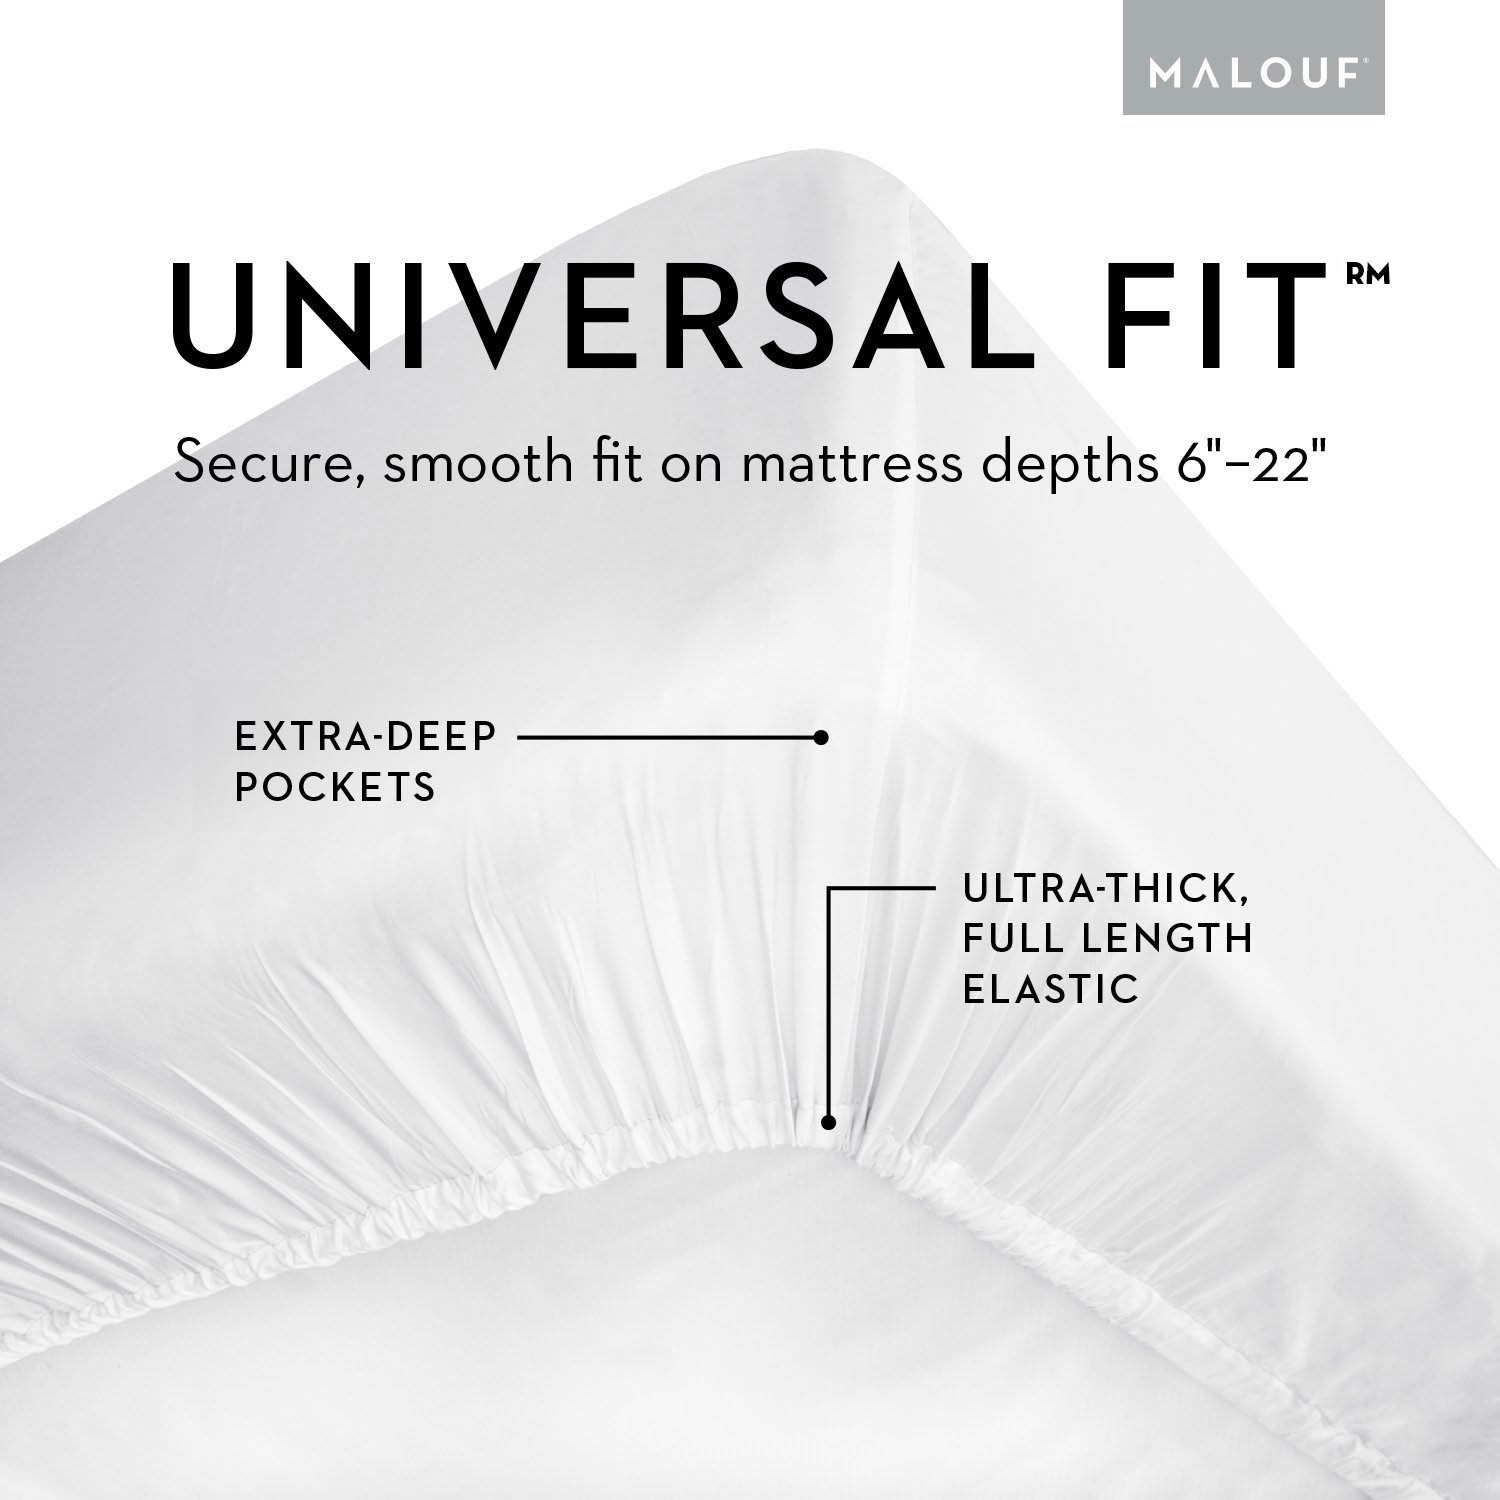 MALOUF Split Head 100% Rayon From Bamboo Sheet Set - 4-pc Set - Queen - Driftwood by MALOUF (Image #5)